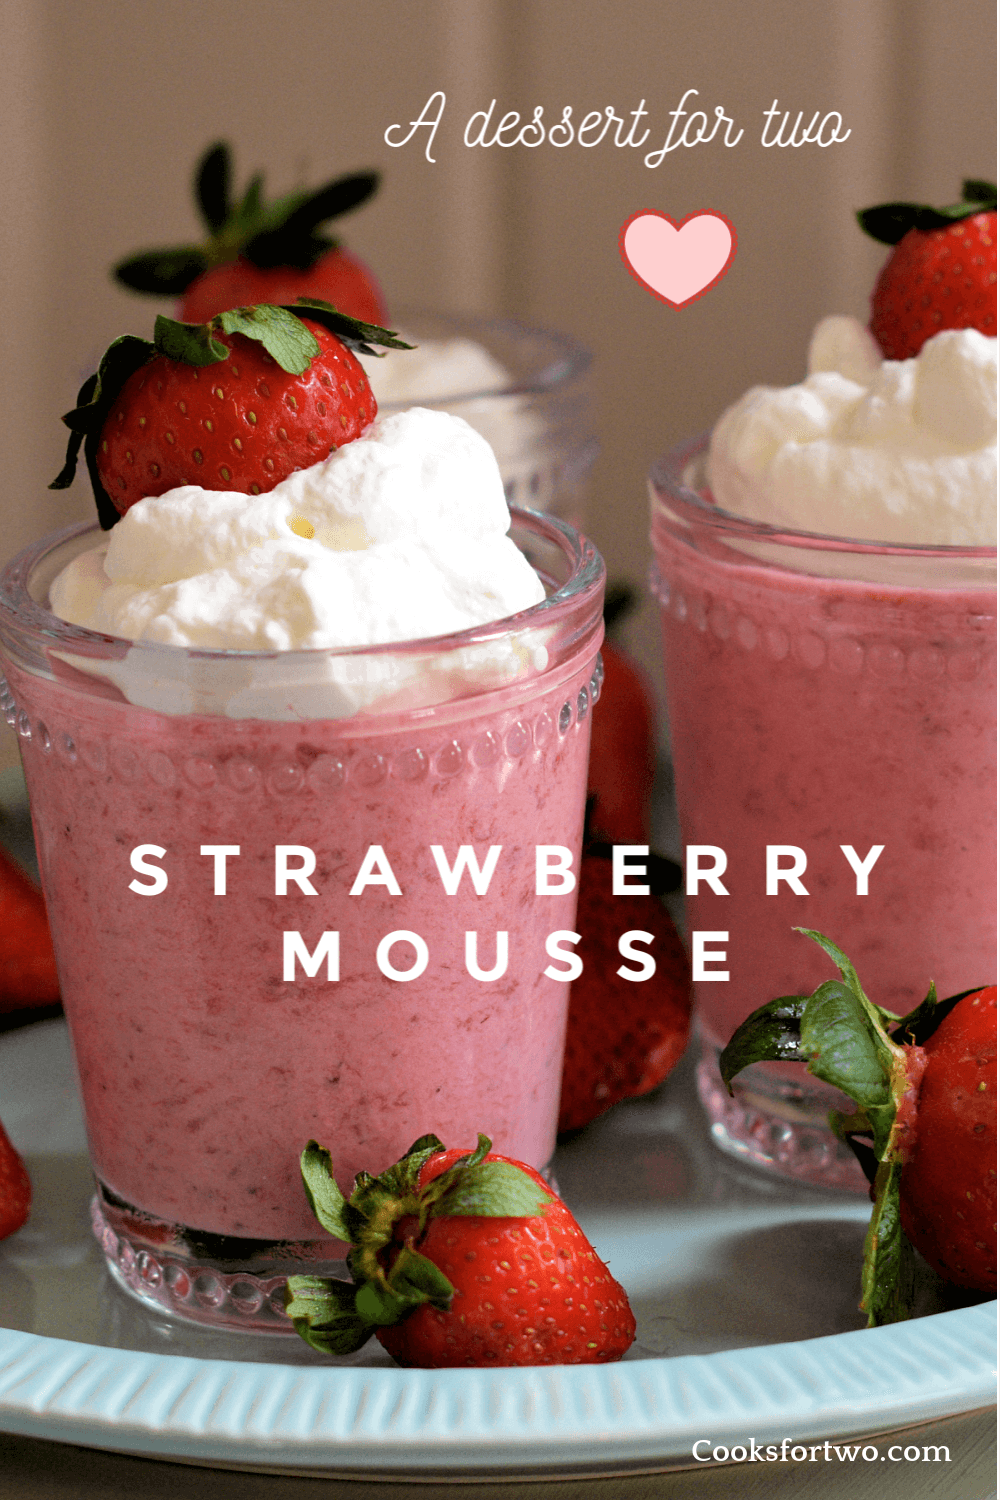 A light no-bake dessert that is fresh and creamy with a strong strawberry flavor. The strawberry juice is reduced to give it that concentrated berry flavor. This is a no-egg mousse that you can make ahead without fear of having it get runny. A delicious treat any time of year.